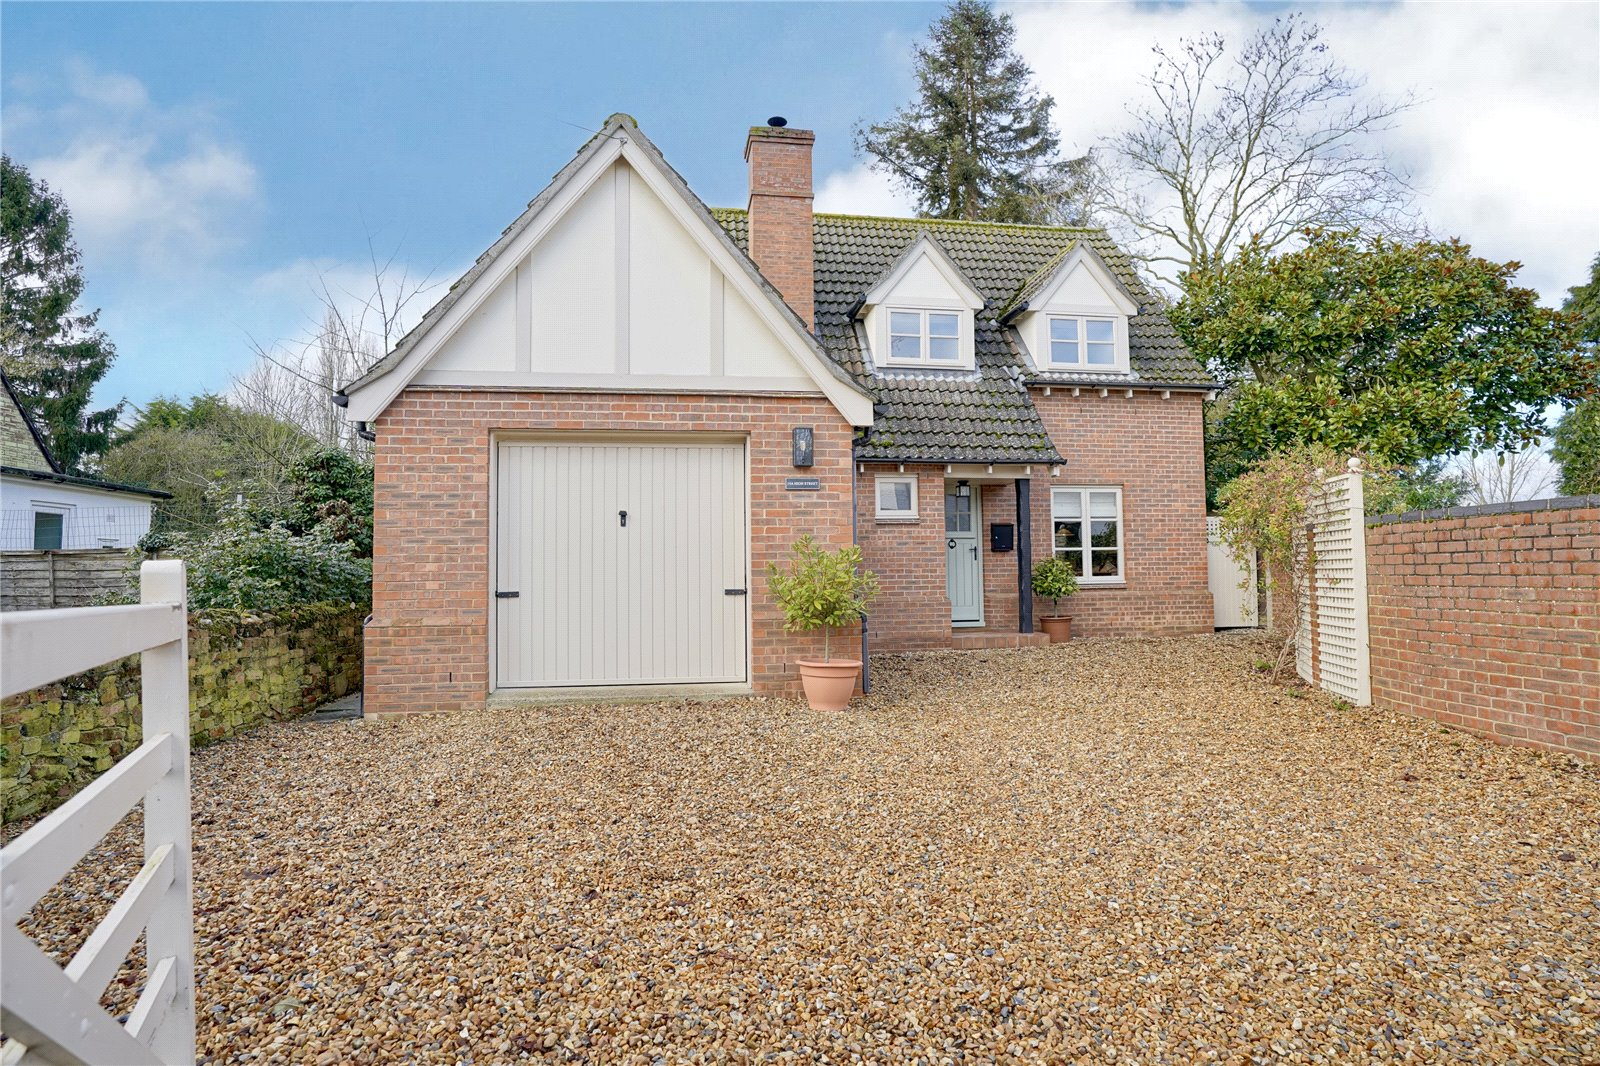 3 bed house for sale in Bluntisham, PE28 3LD 0